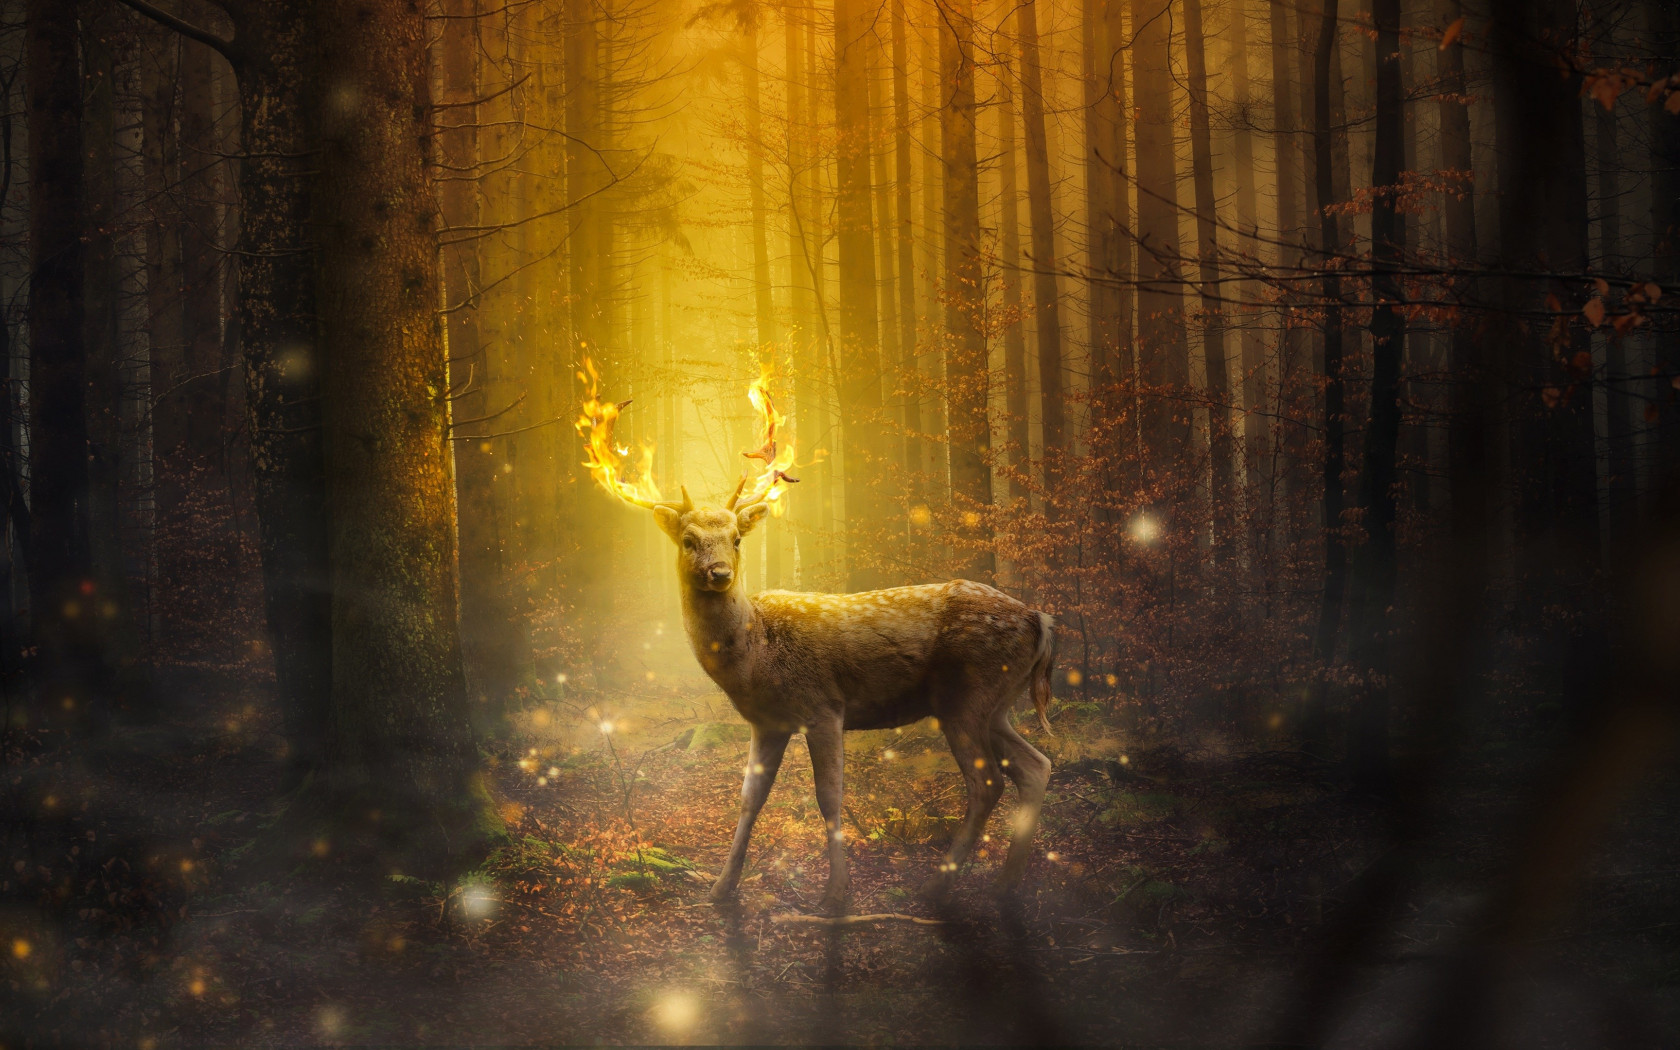 Fantasy, stag, horns, flames wallpaper 1680x1050